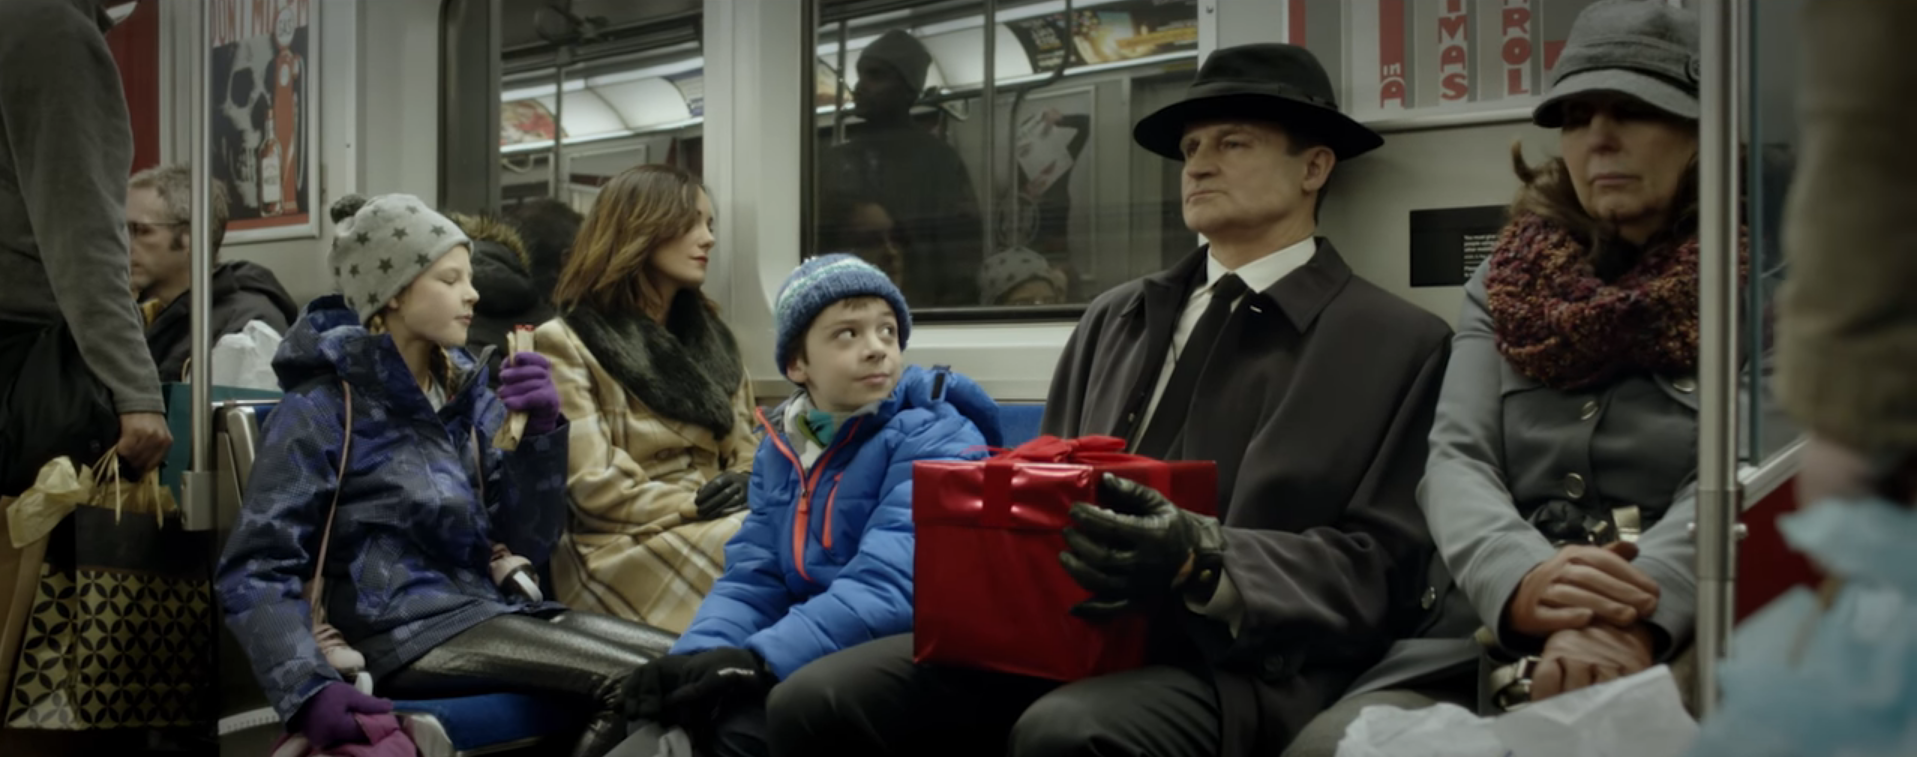 """The Box,"" a family travels on a train and meets a man with an unusual gift."